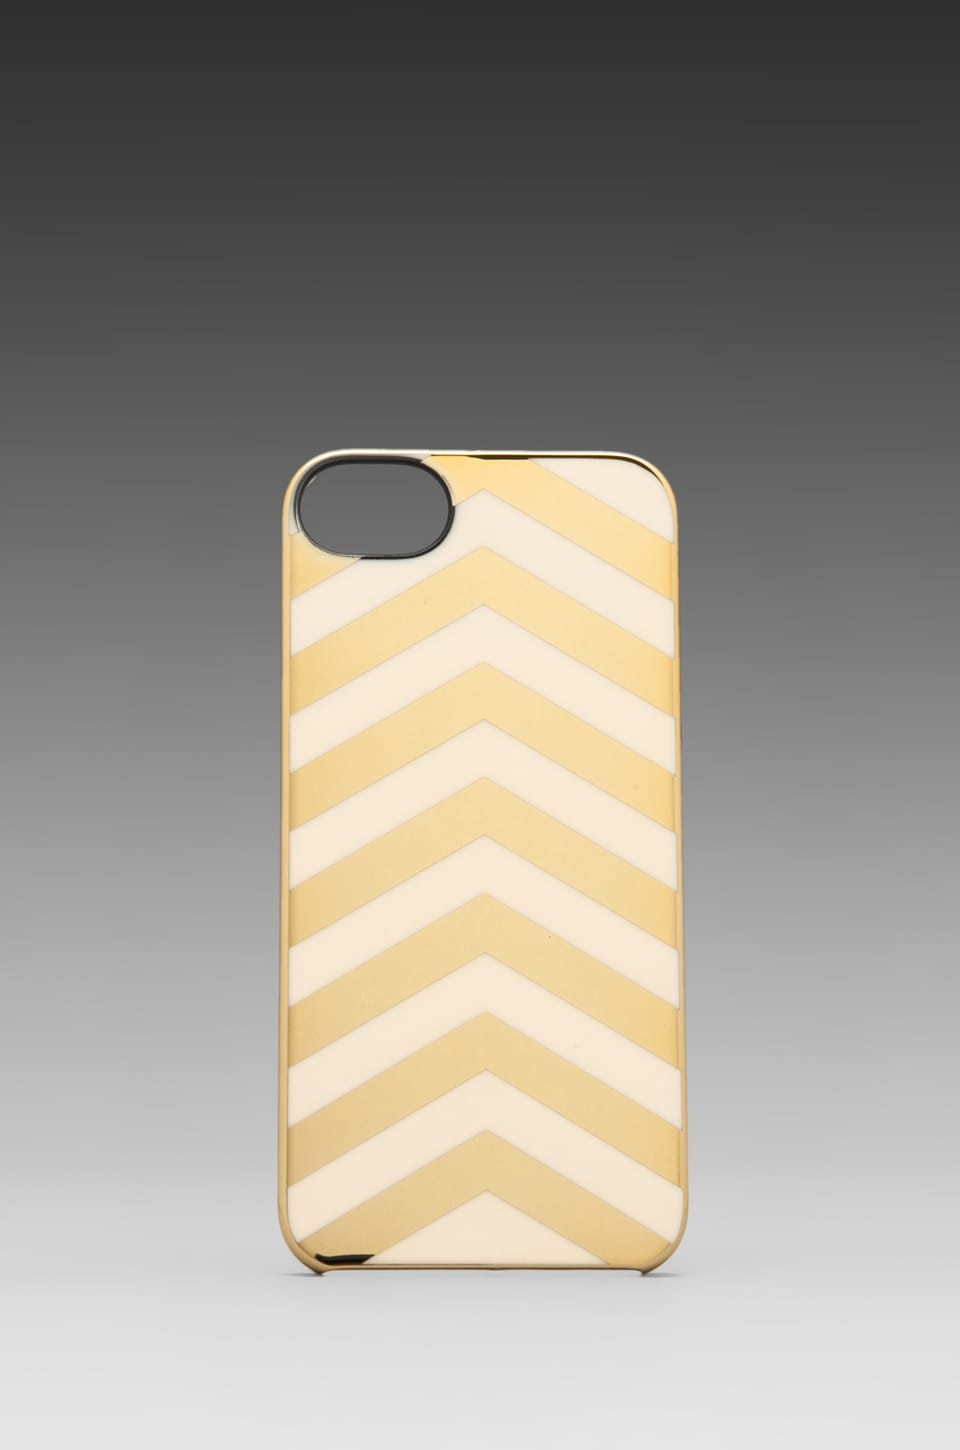 INCASE Snap Case for iPhone 5 in Gold Chrome/Cream Chevron